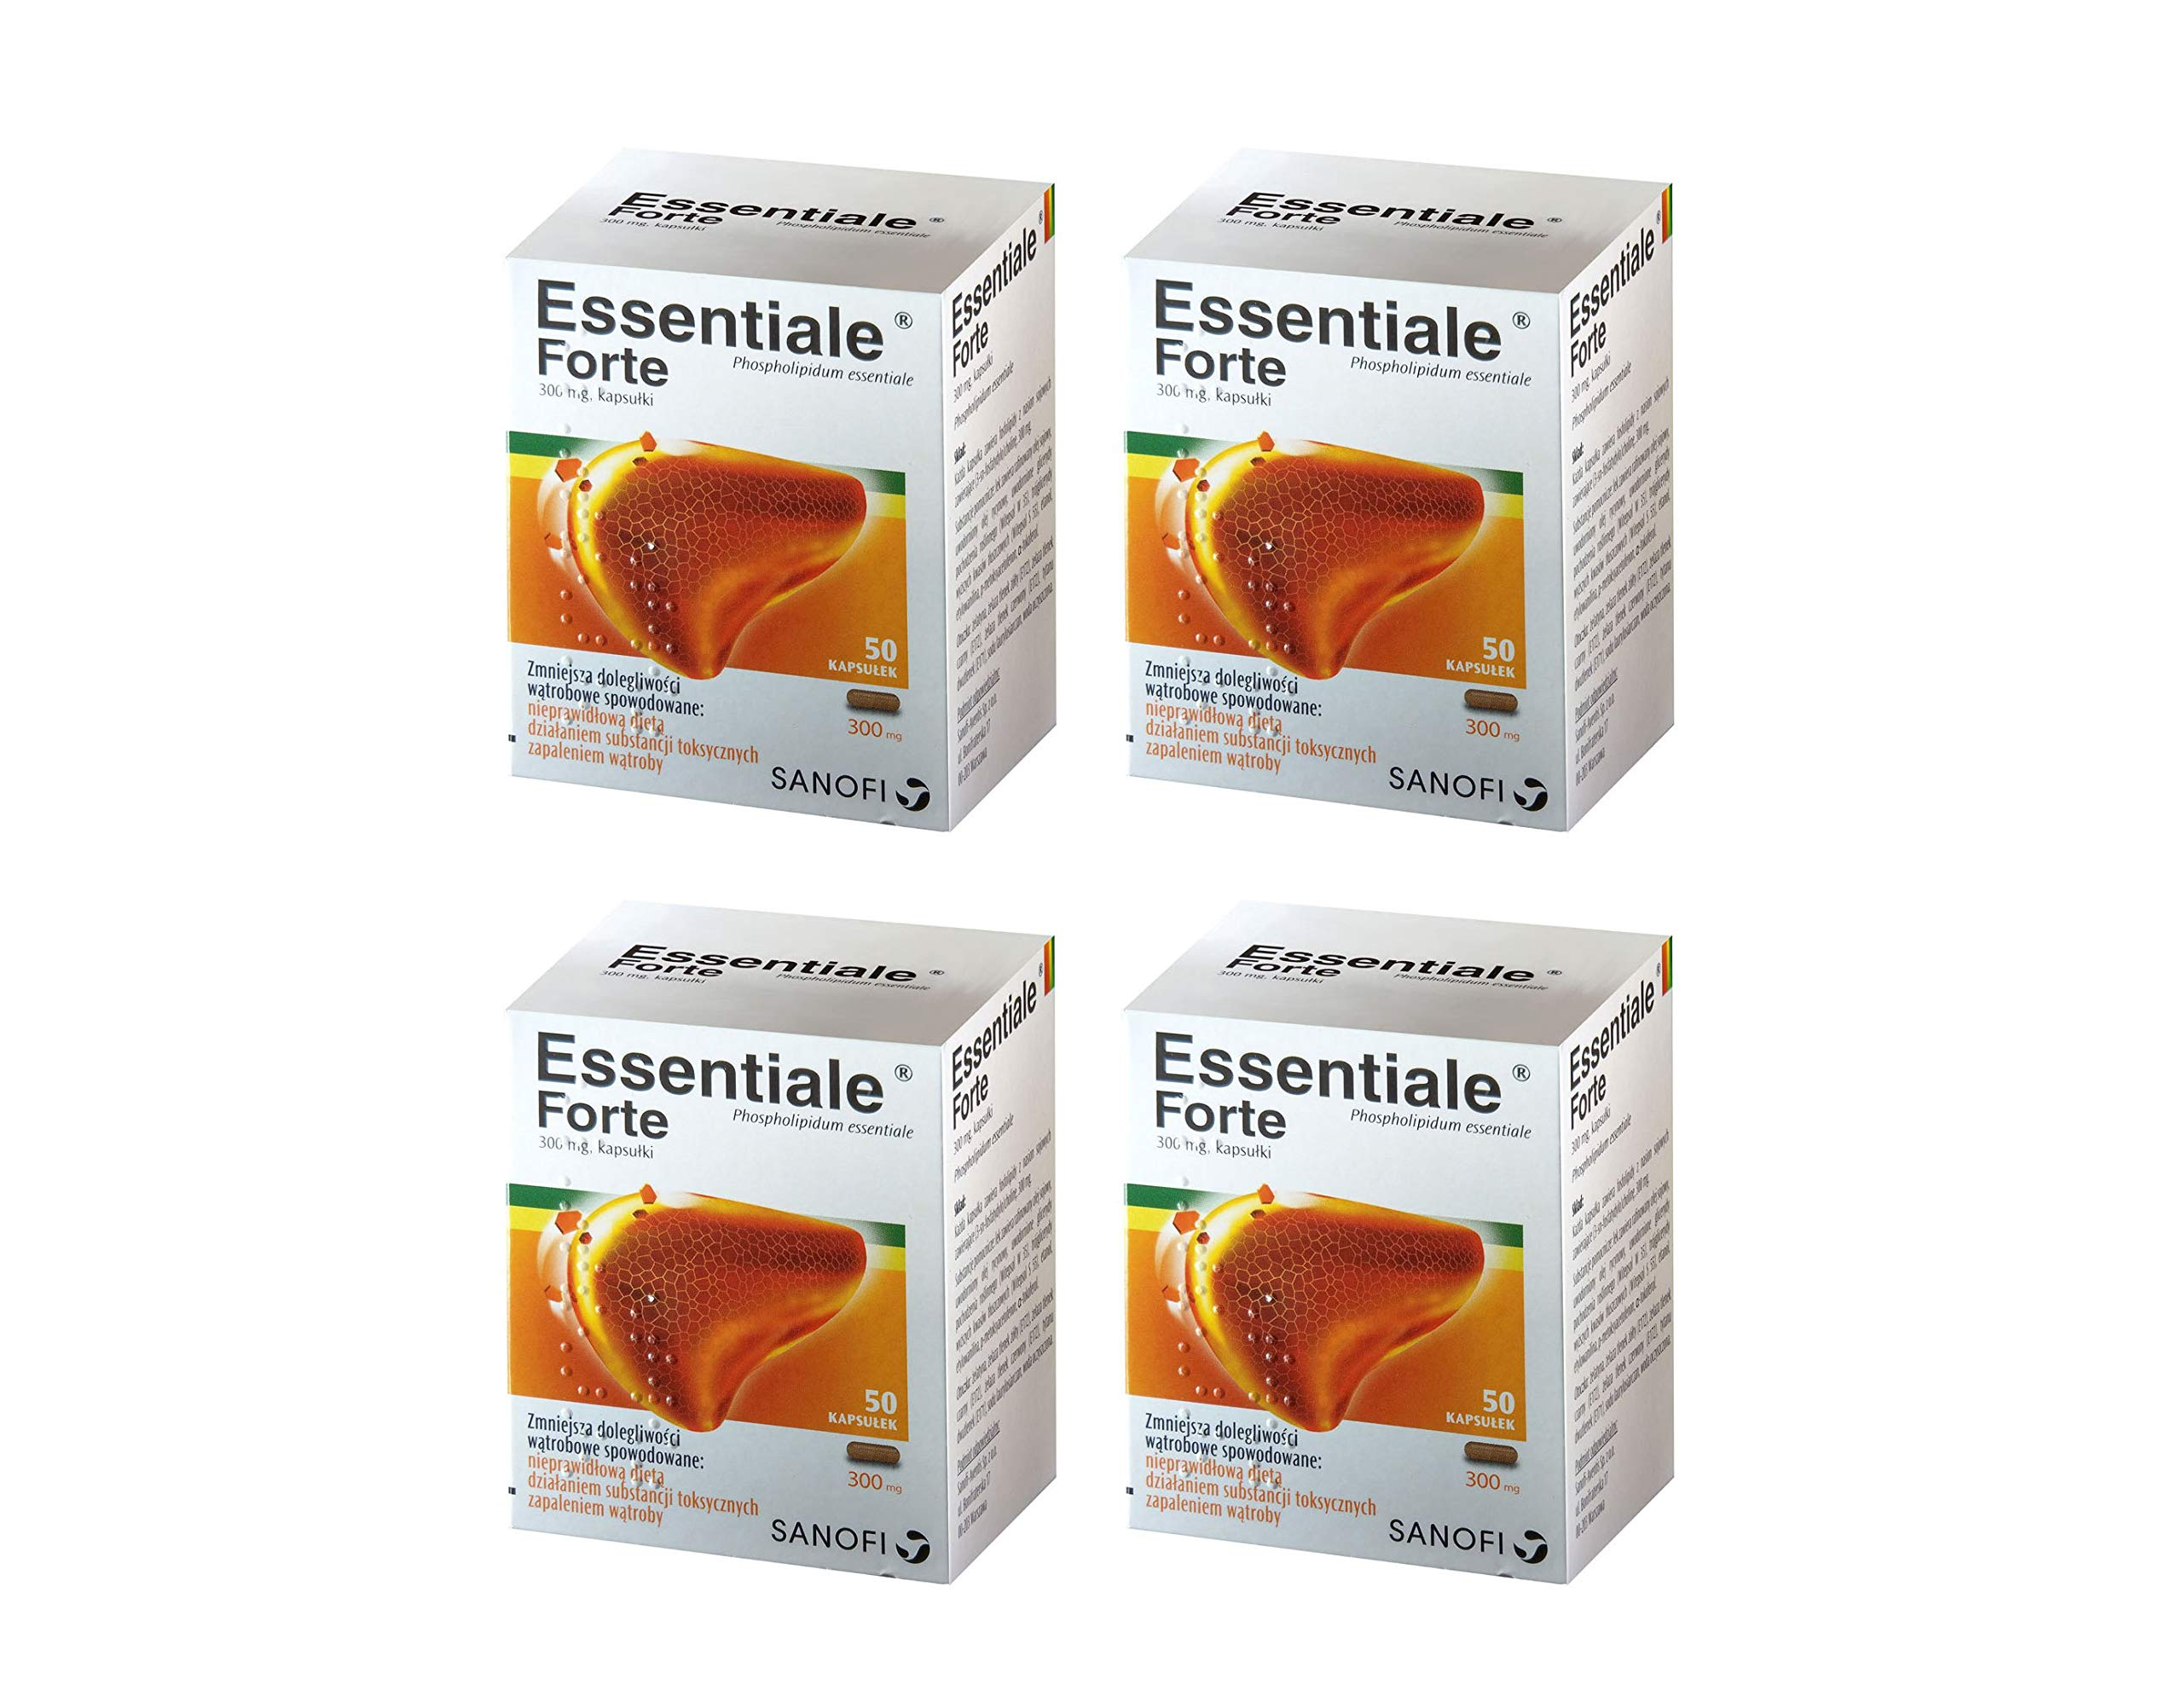 ESSENTIALE FORTE 200 capsules Liver Detox Cleanse Support Regeneration Treatment - 100% Natural and Side-Effect Free supplement - contains Soy Essential Phospholipids Non-GMO by SANOFI